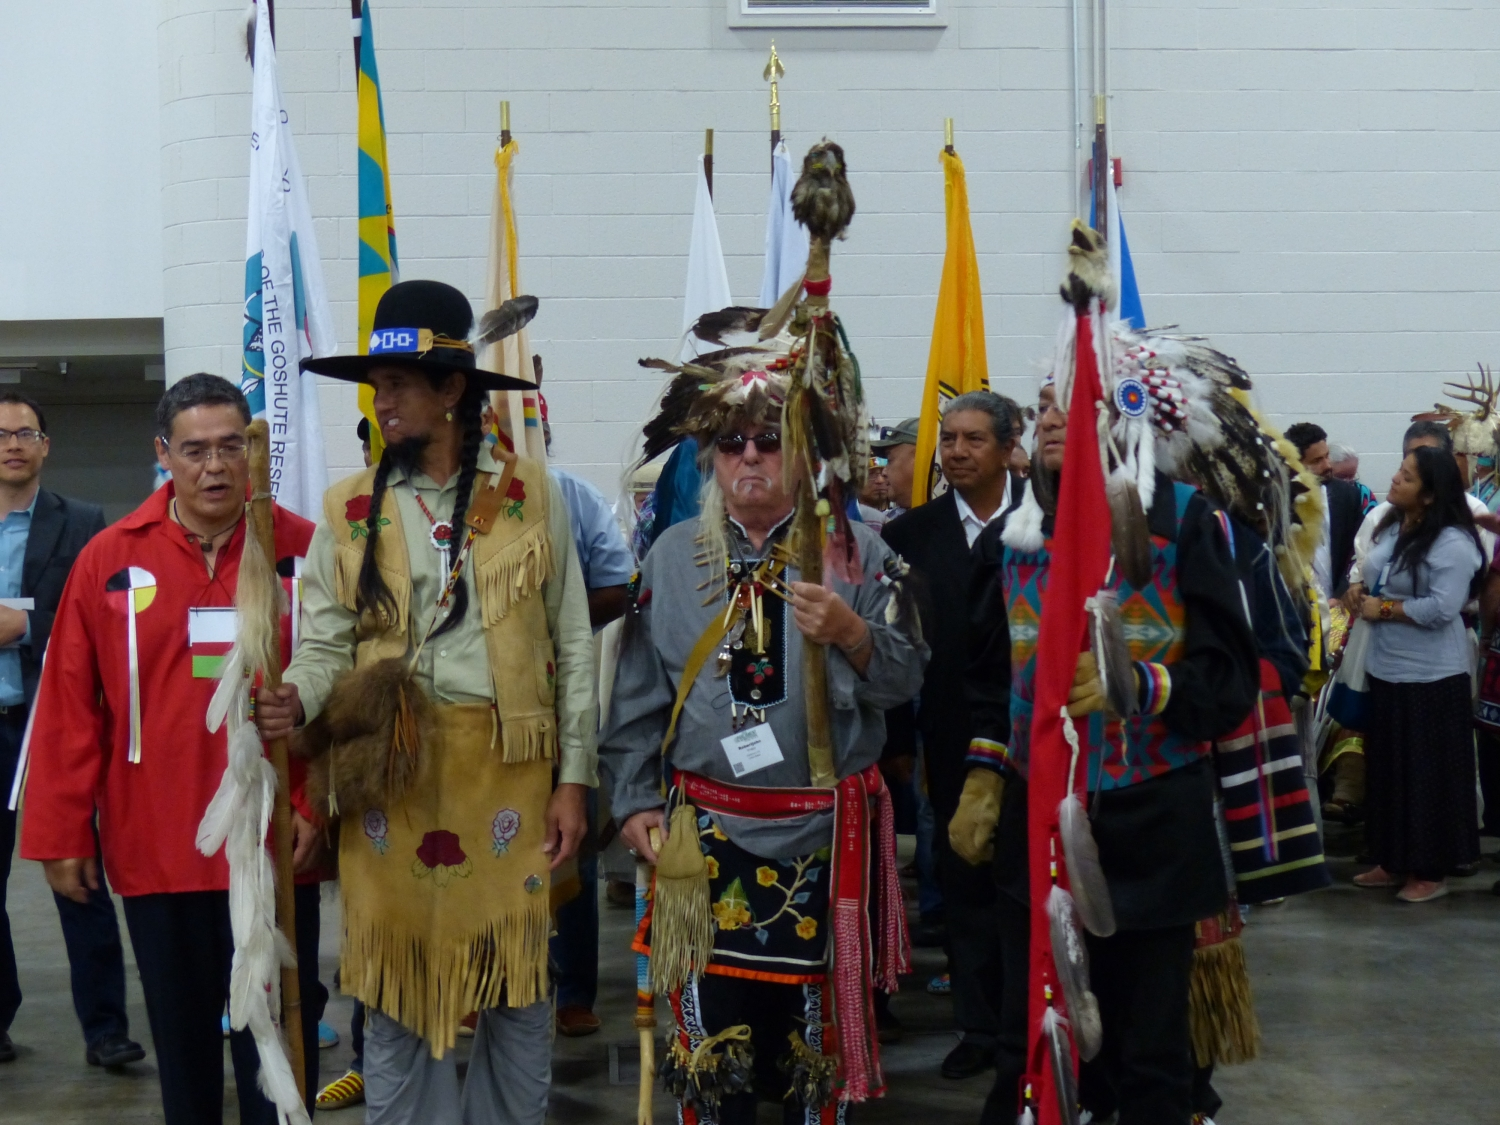 Parade of flags at the Opening Plenary Session led by Native American Indians